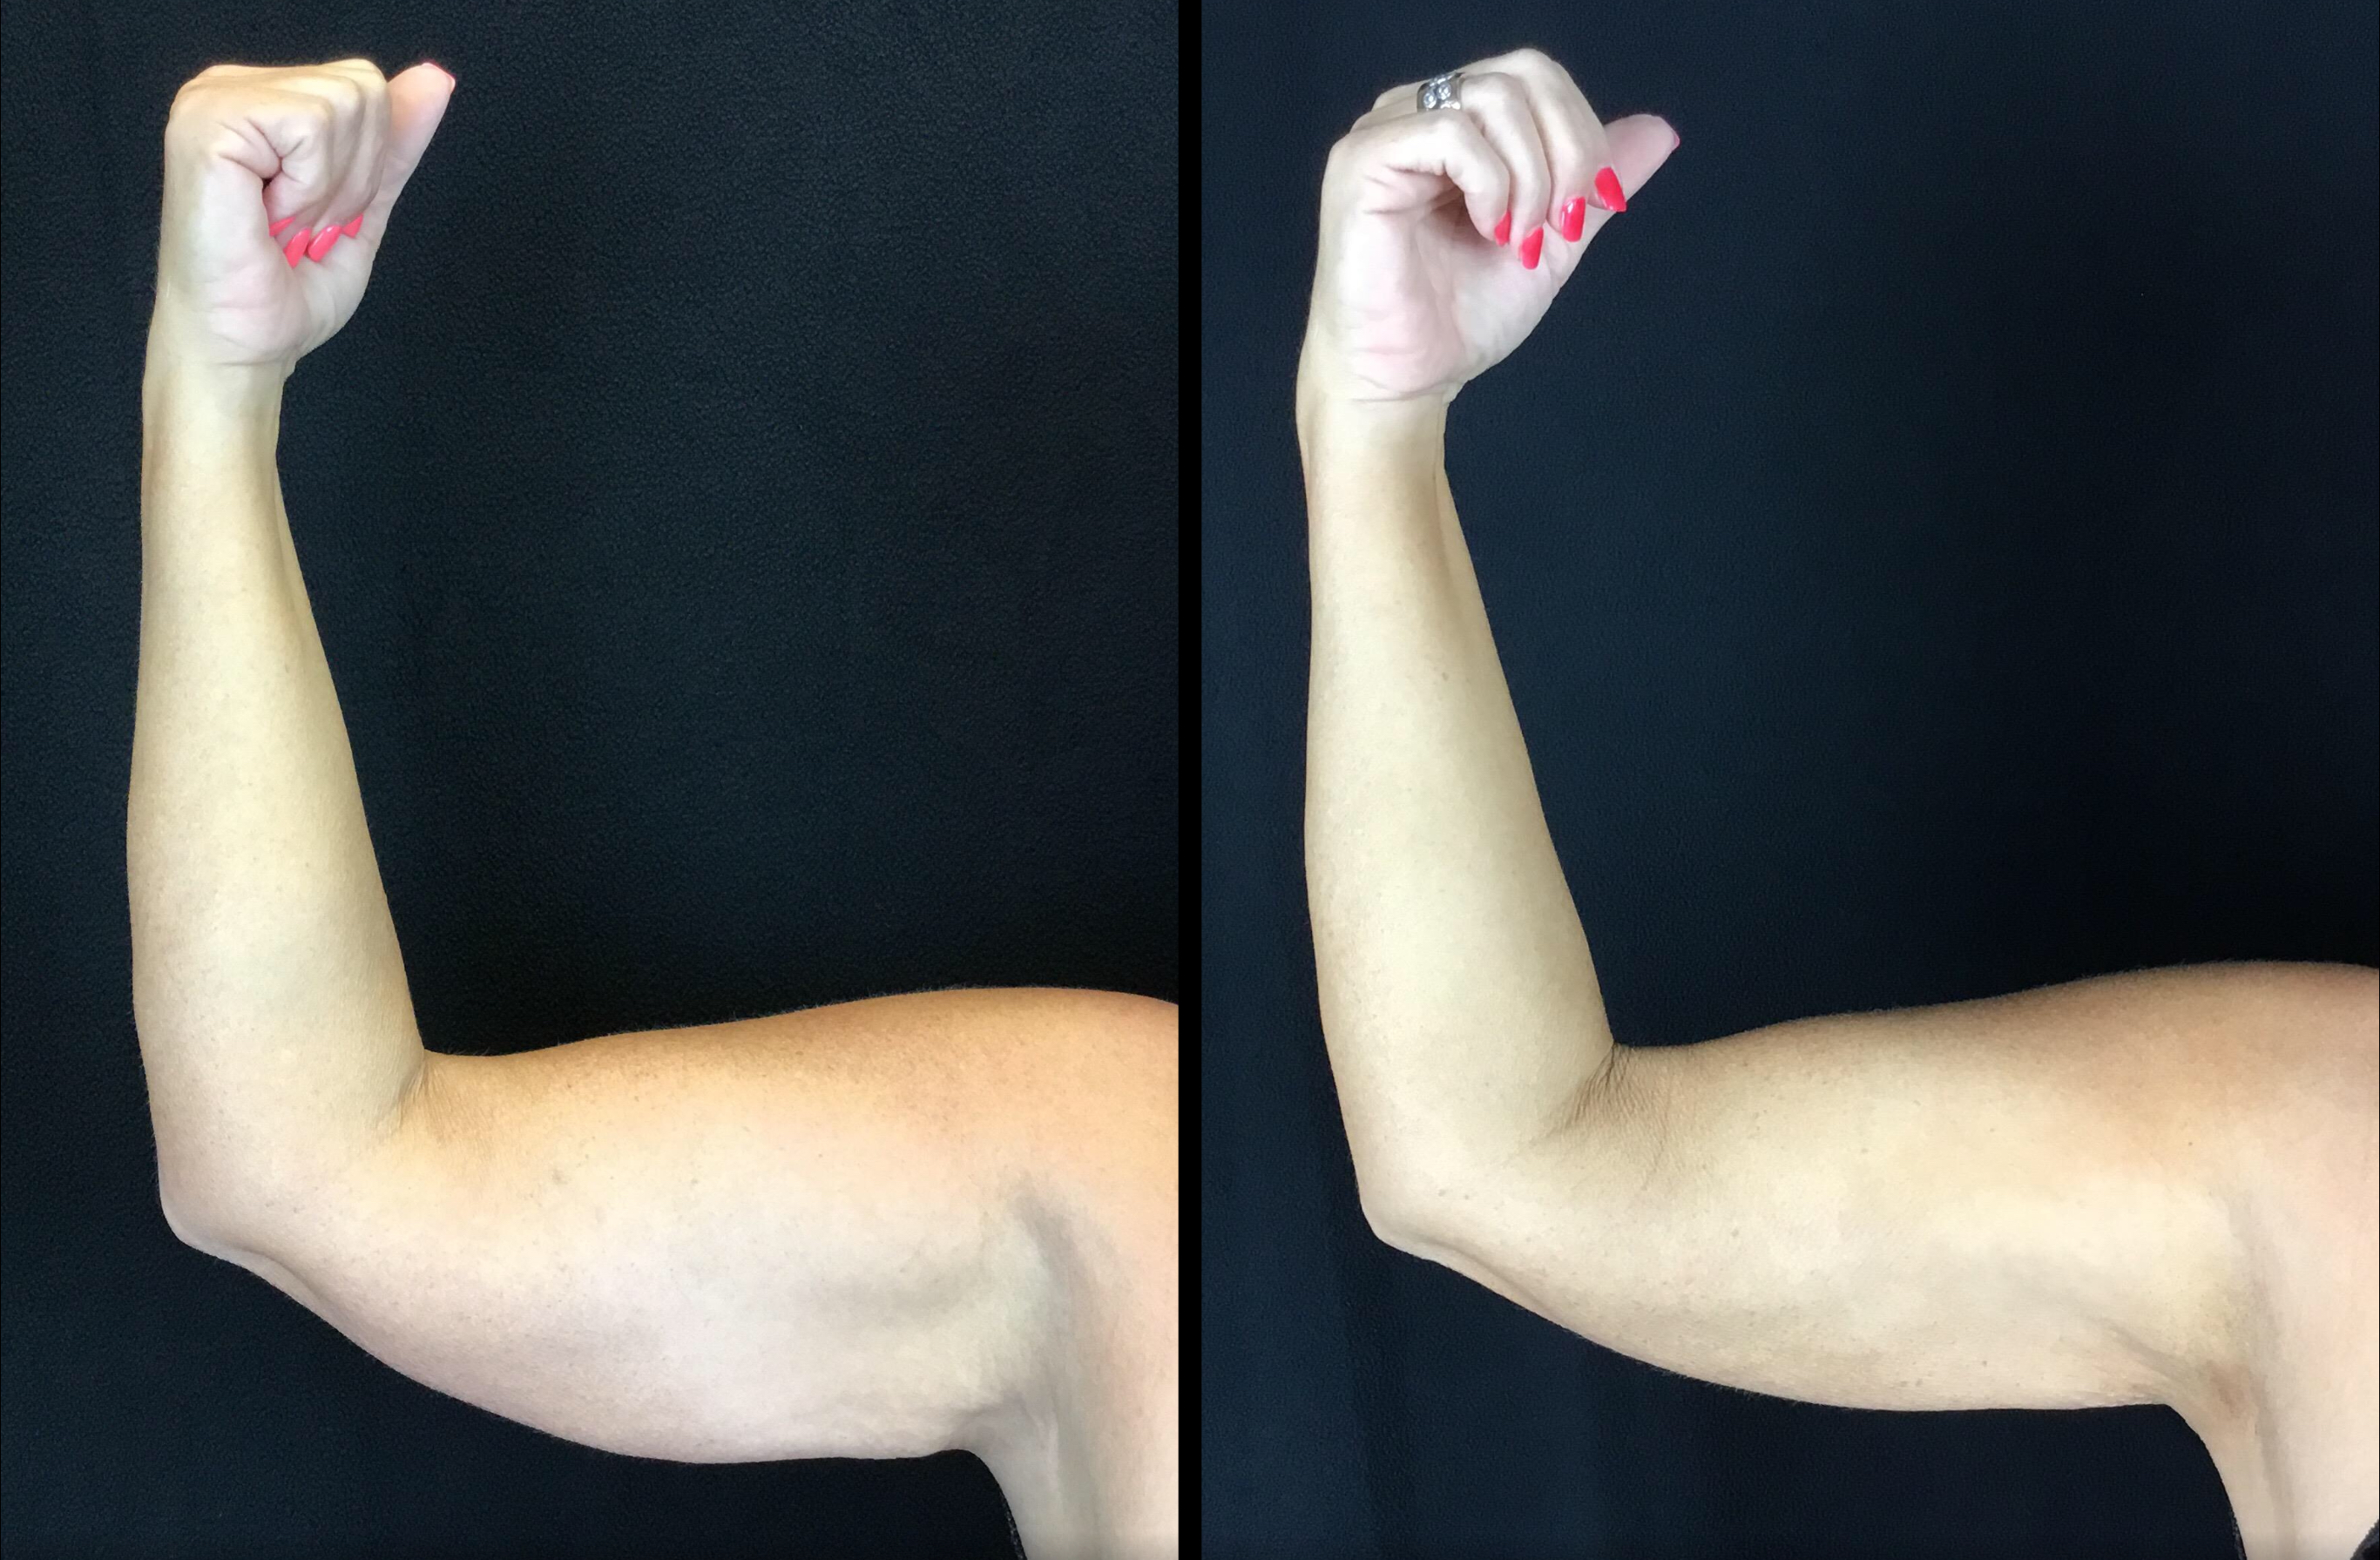 Scarless Arm Lift (BodyTite)